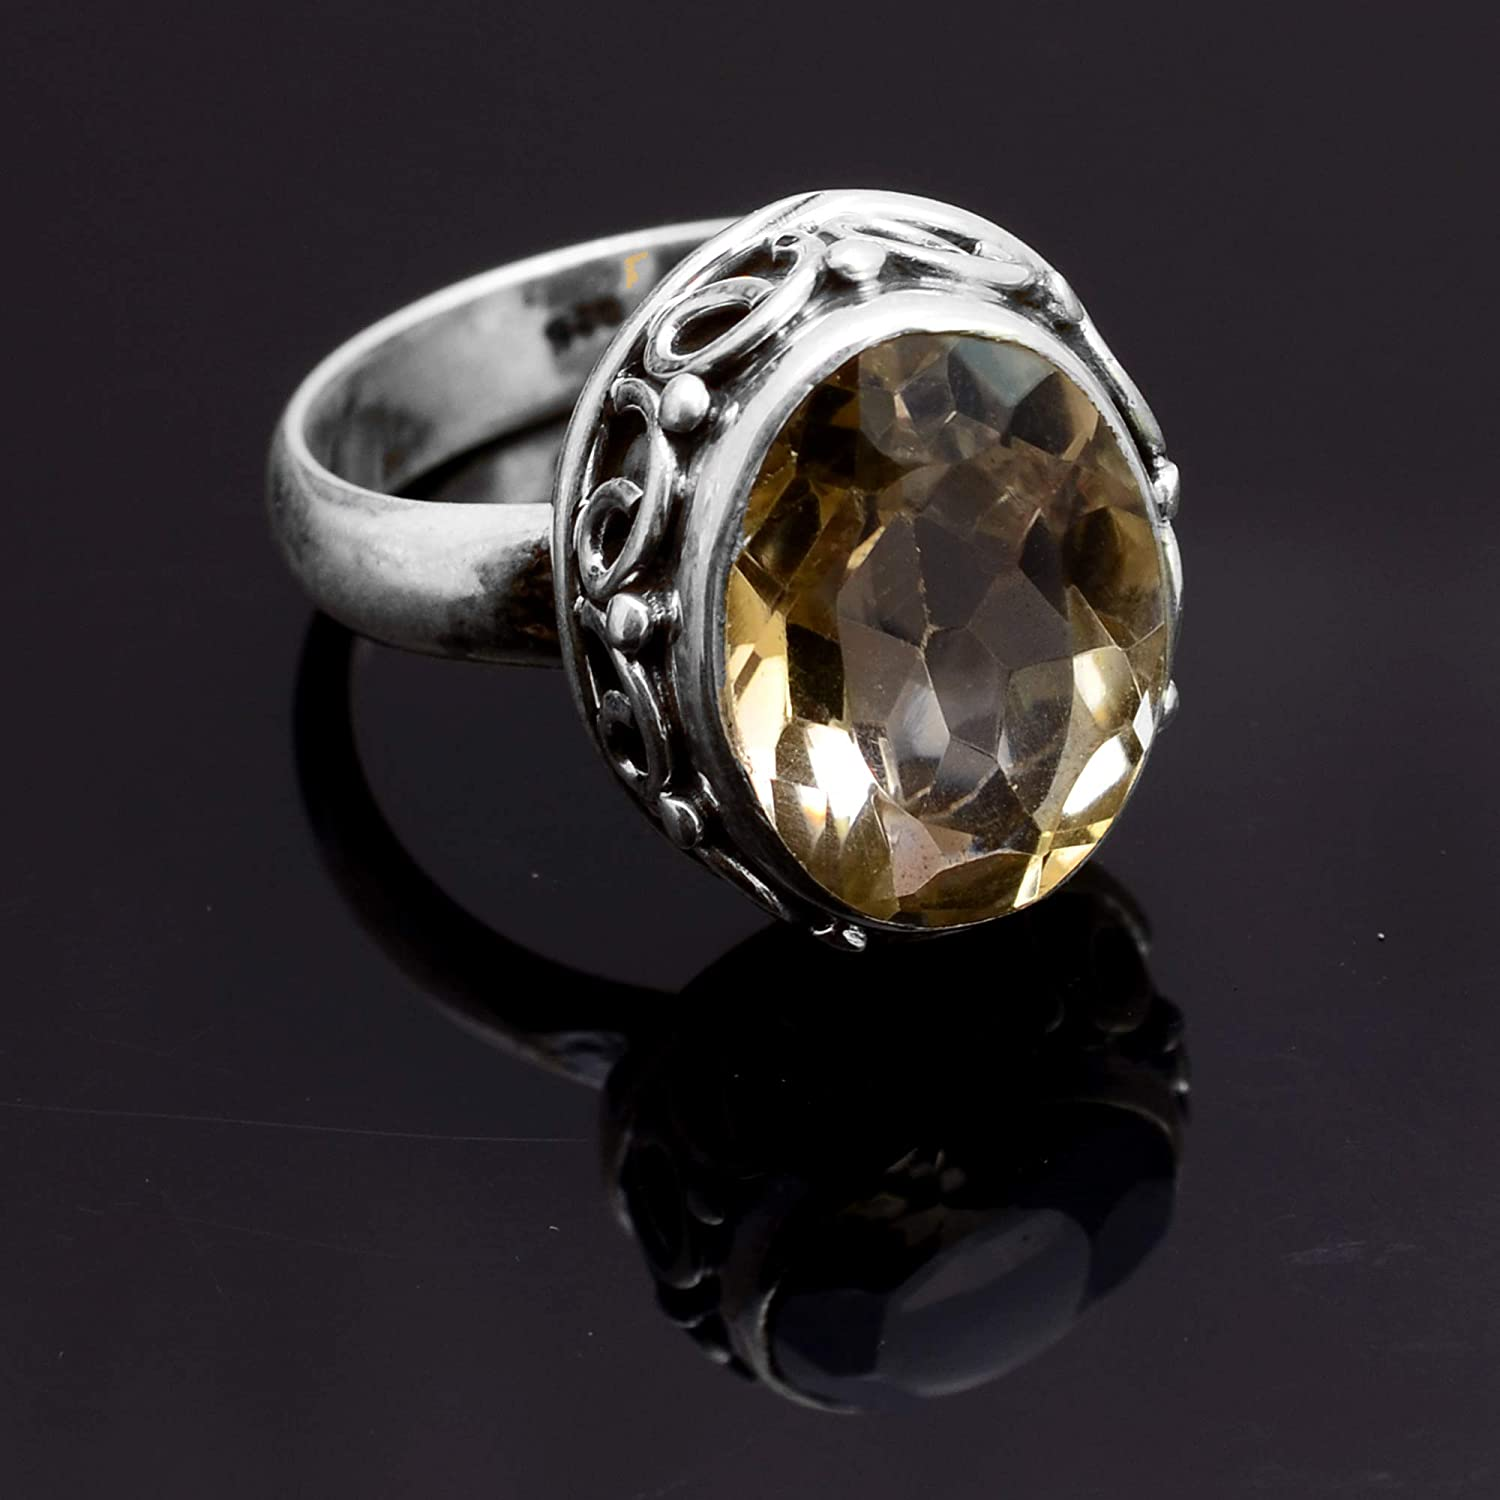 Silver Palace 925 Sterling Silver Natural Citrine Ring for Womens and Girls